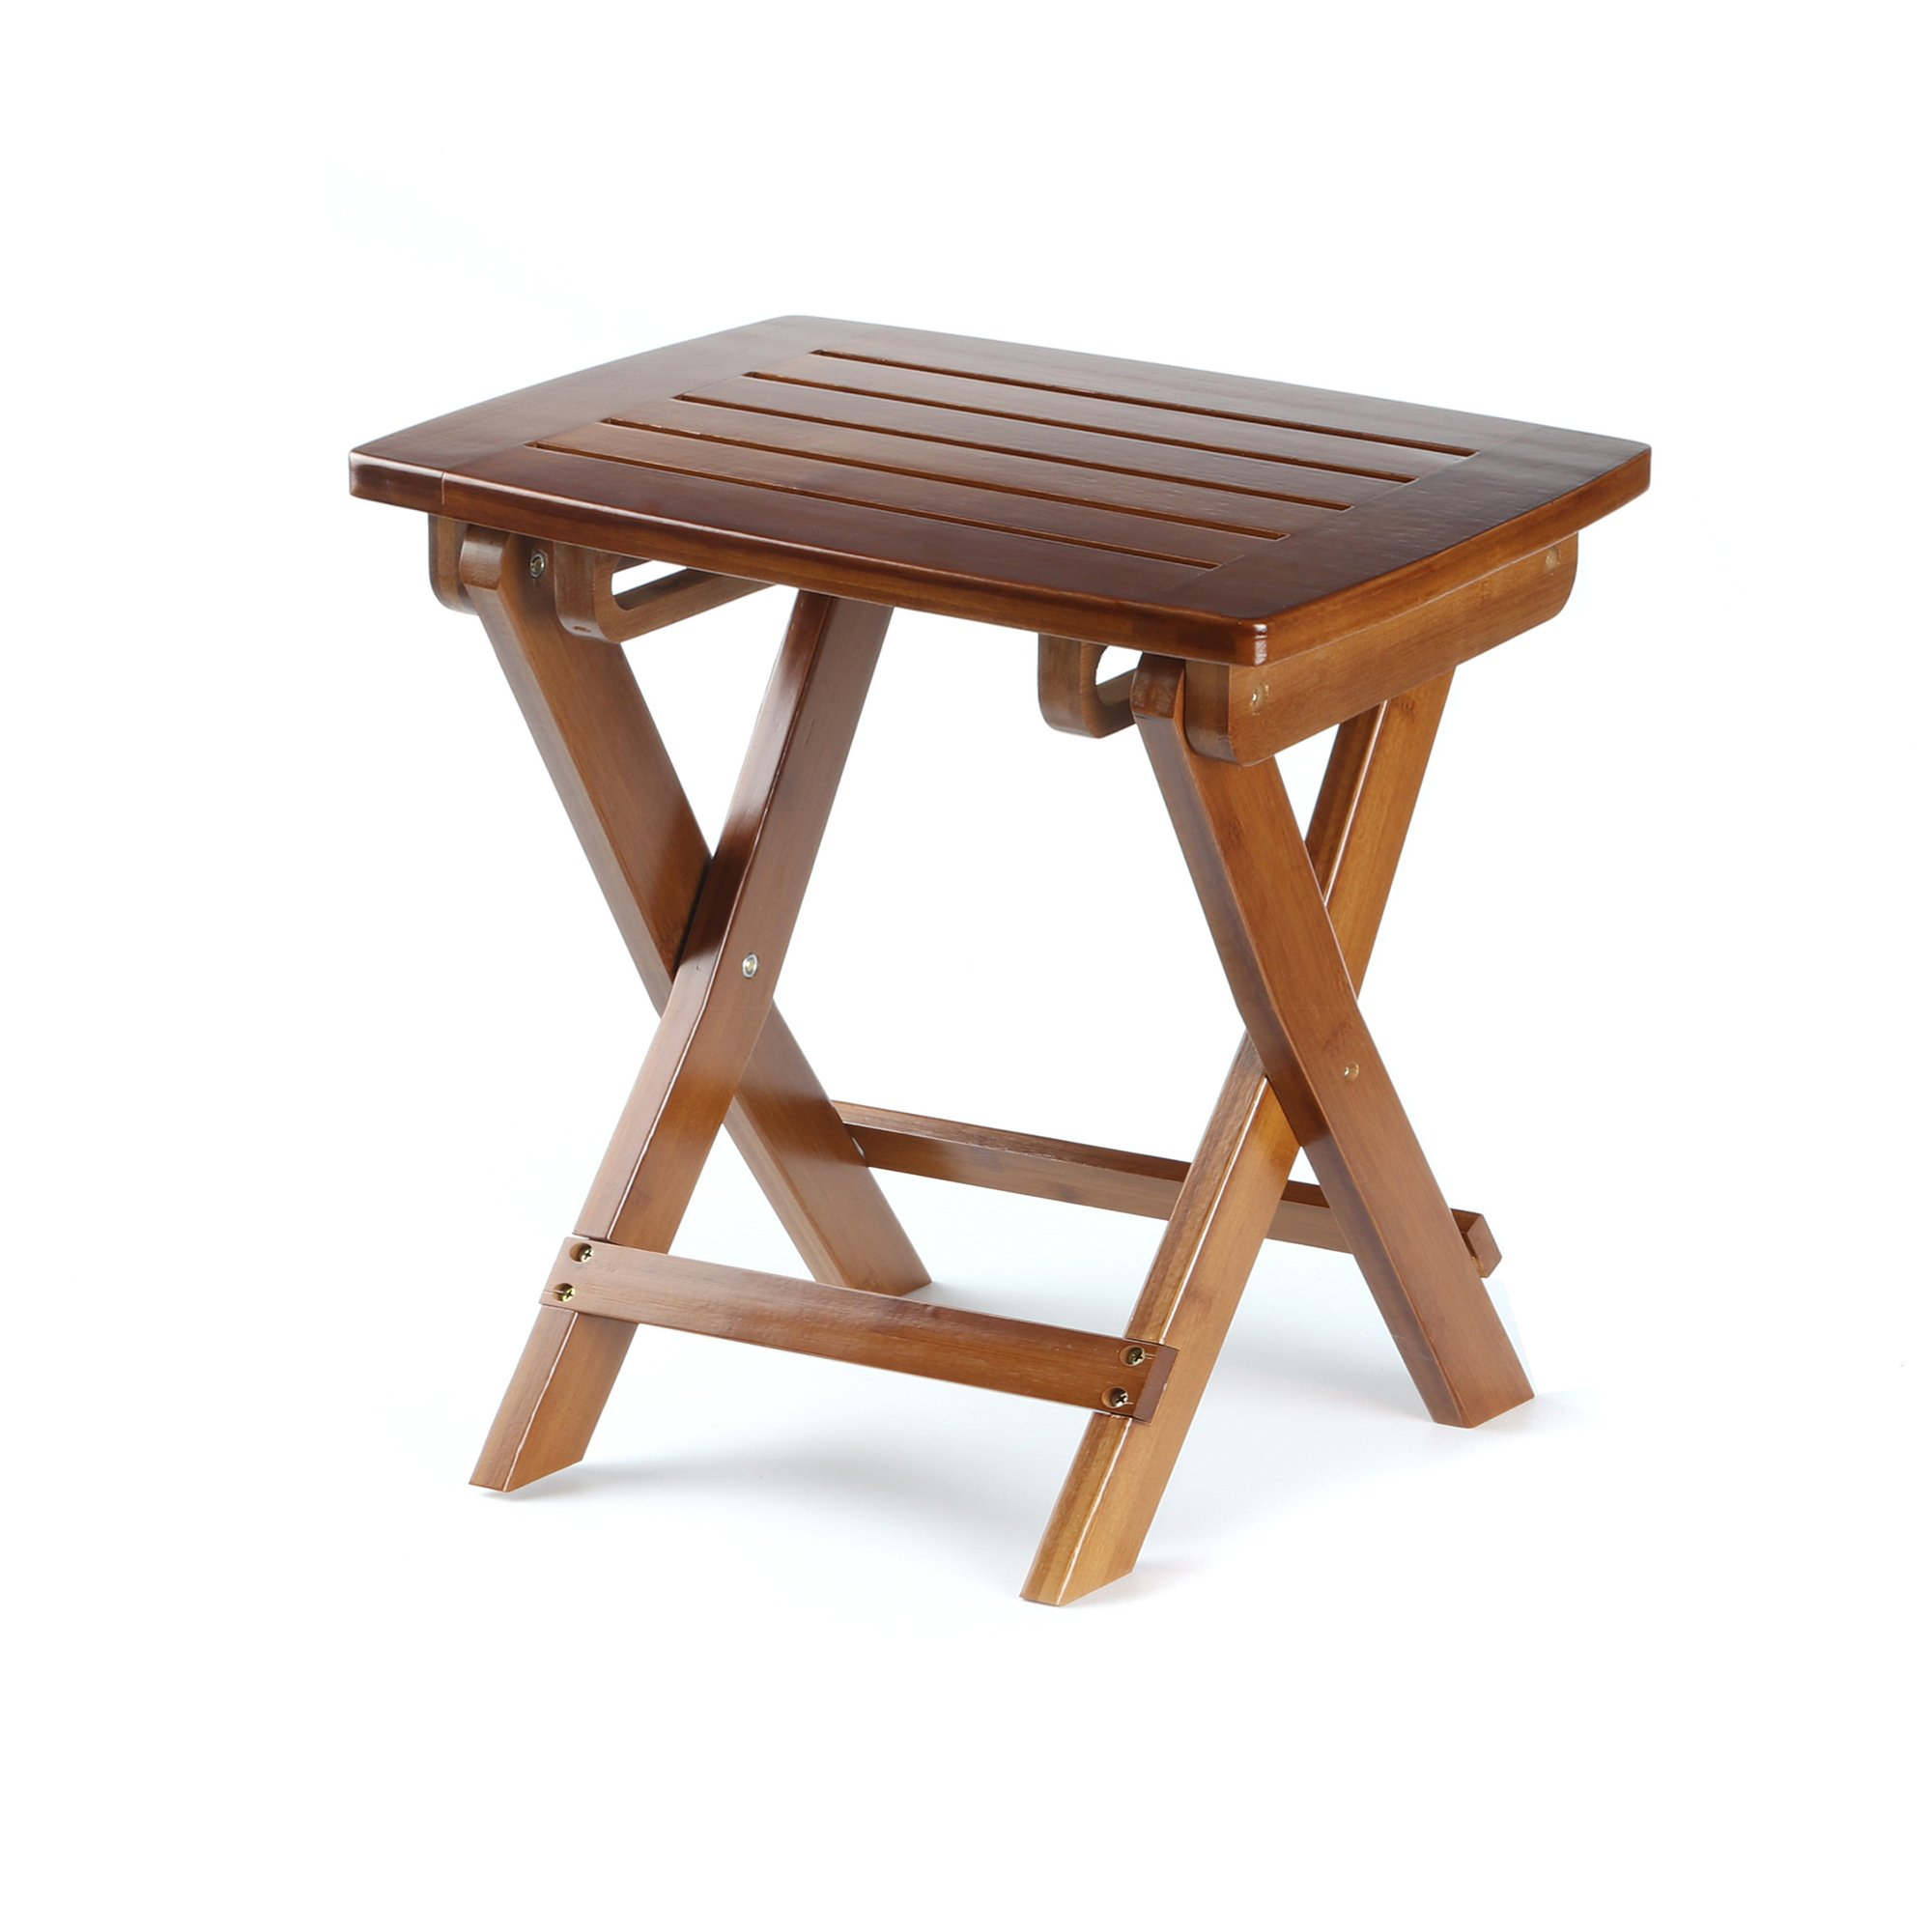 Wondrous Details About Etechmart Eco Friendly Bamboo Folding Stool For Shaving Shower Foot Rest 14 Pabps2019 Chair Design Images Pabps2019Com